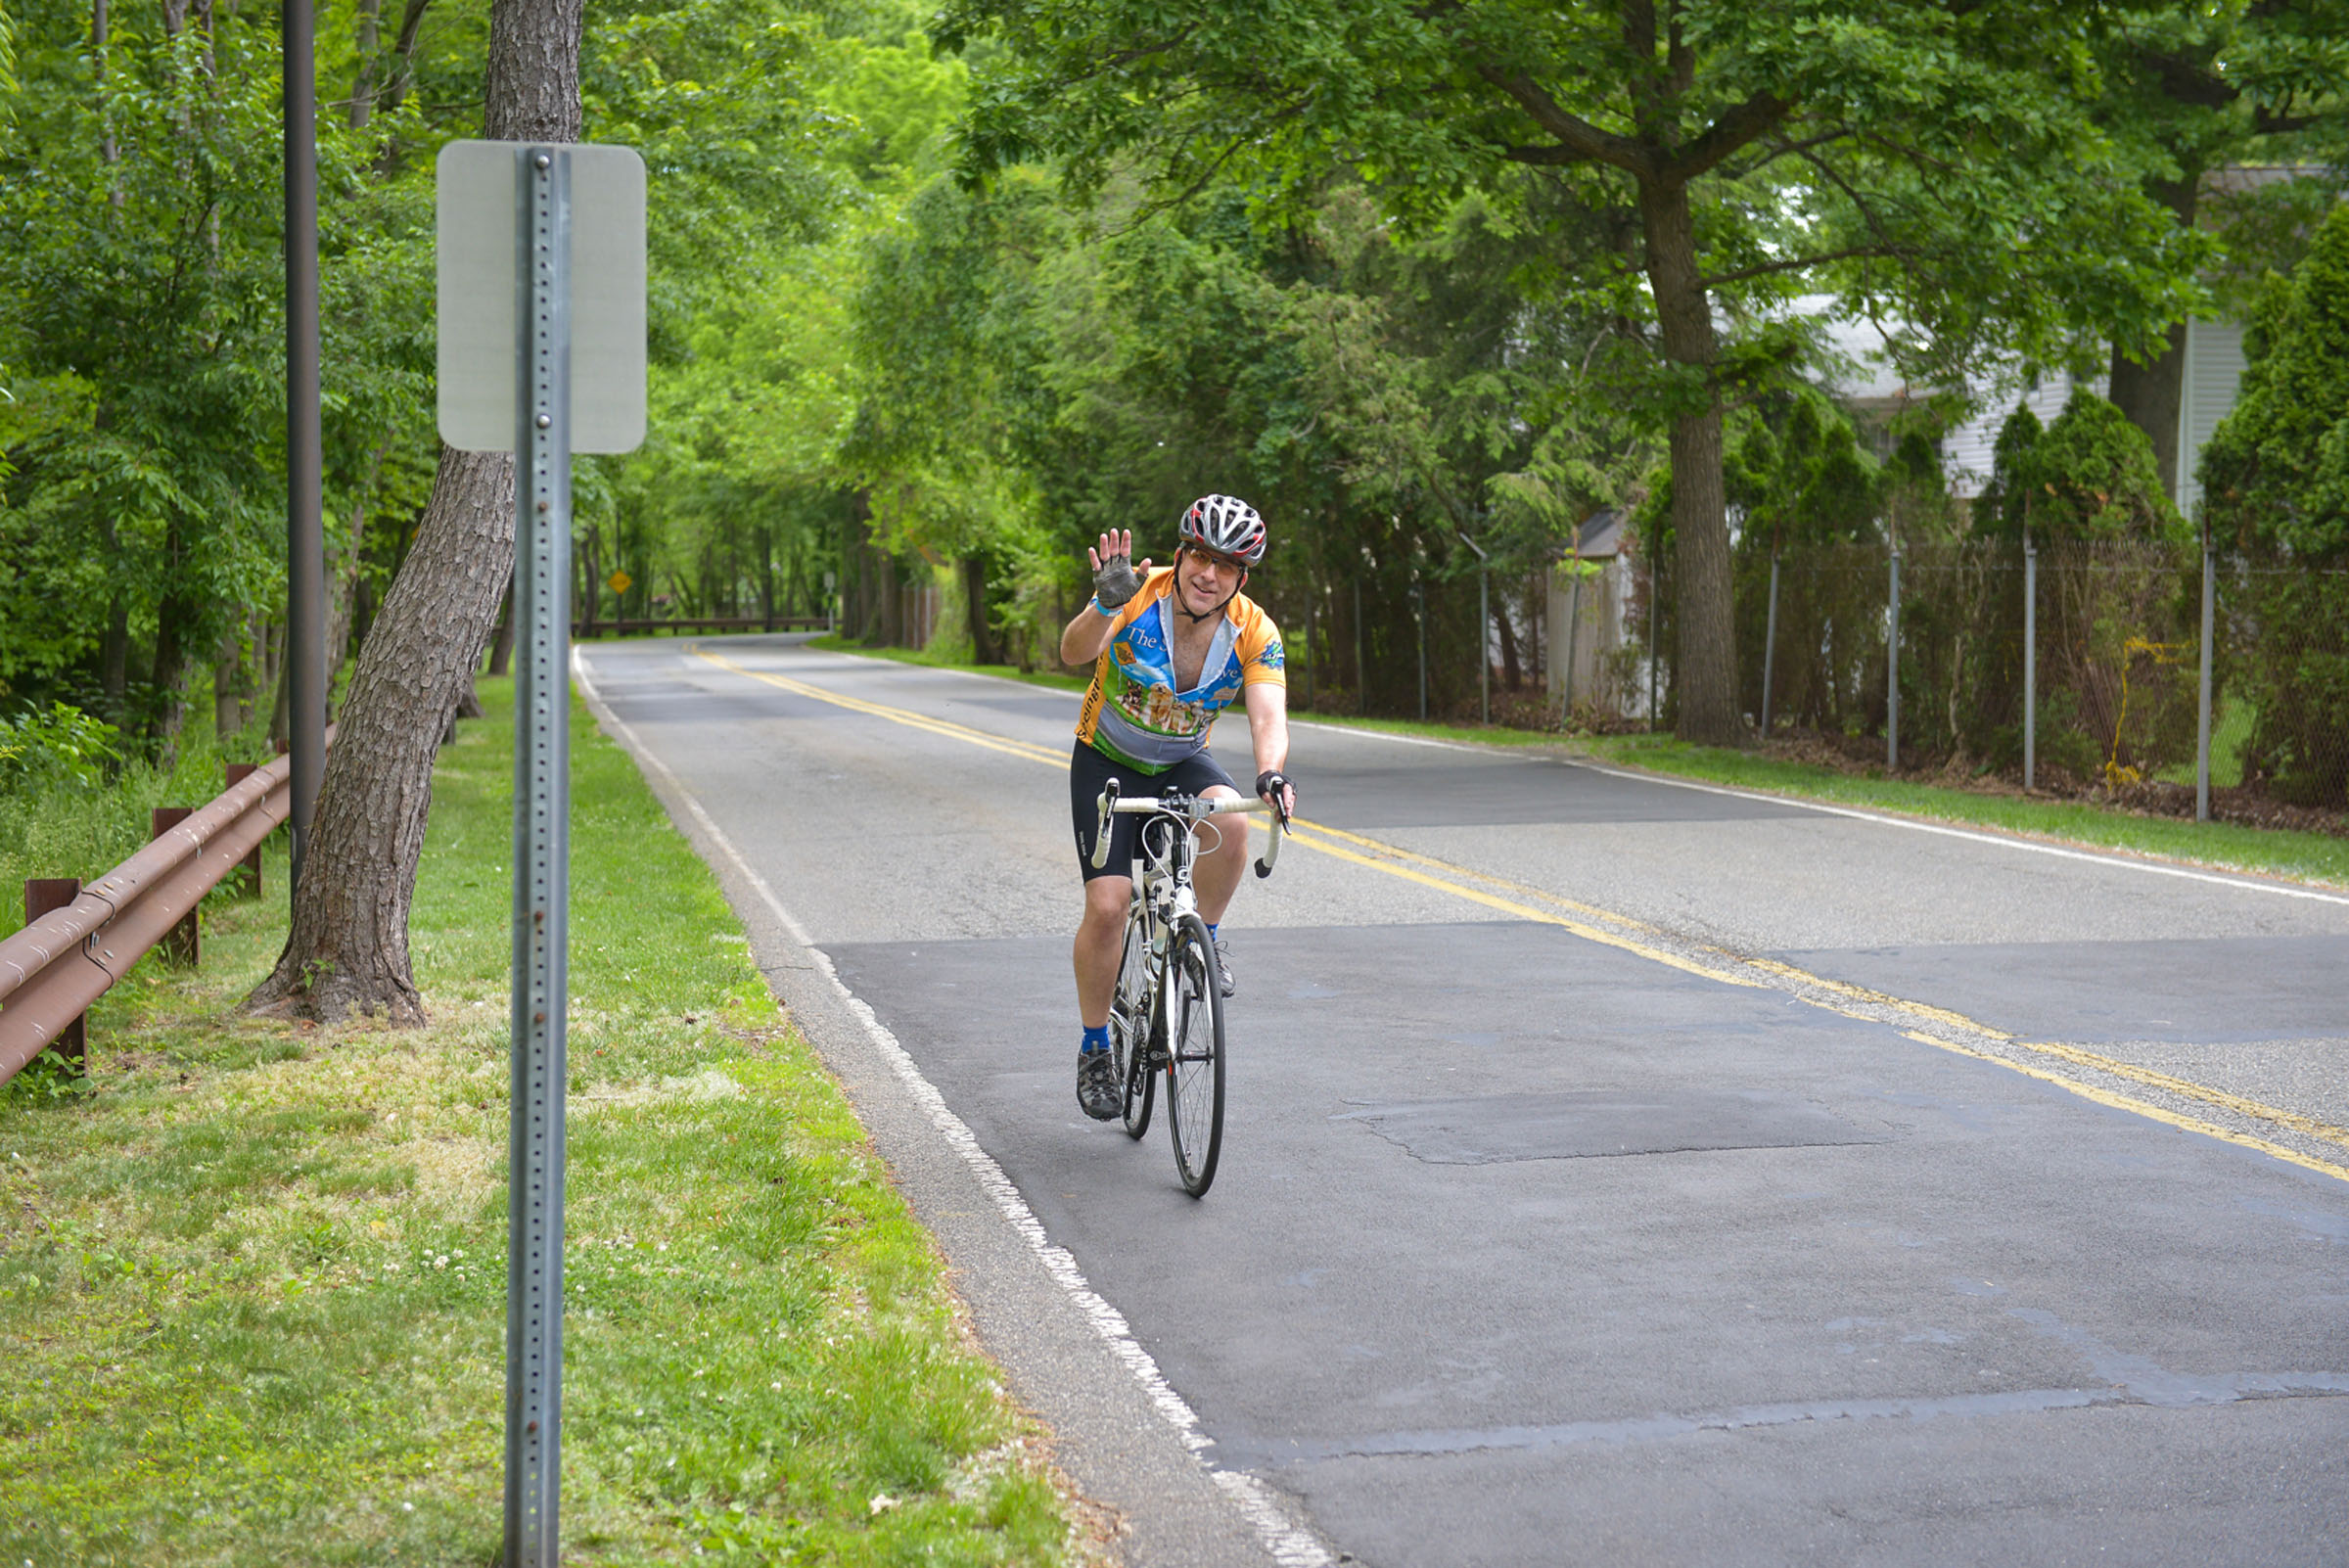 2017-06-04 GTD4A Charity Bike Ride - BCC - Paramus NJ-2318.jpg